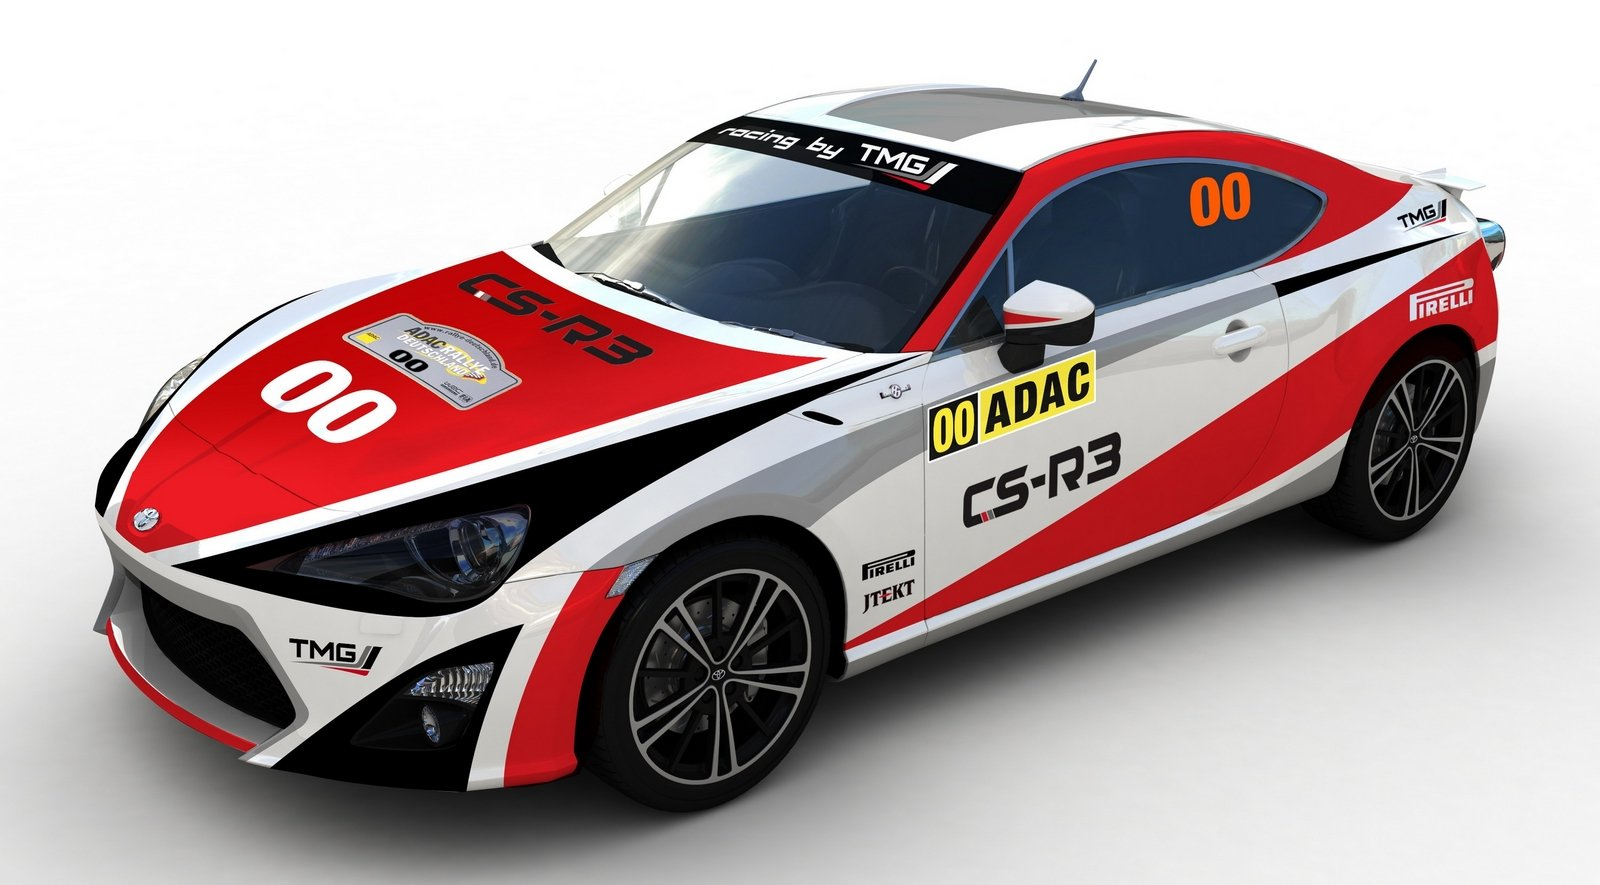 Toyota 86 Livery >> 2015 Toyota GT86 CS-R3 Rally Car Review - Top Speed